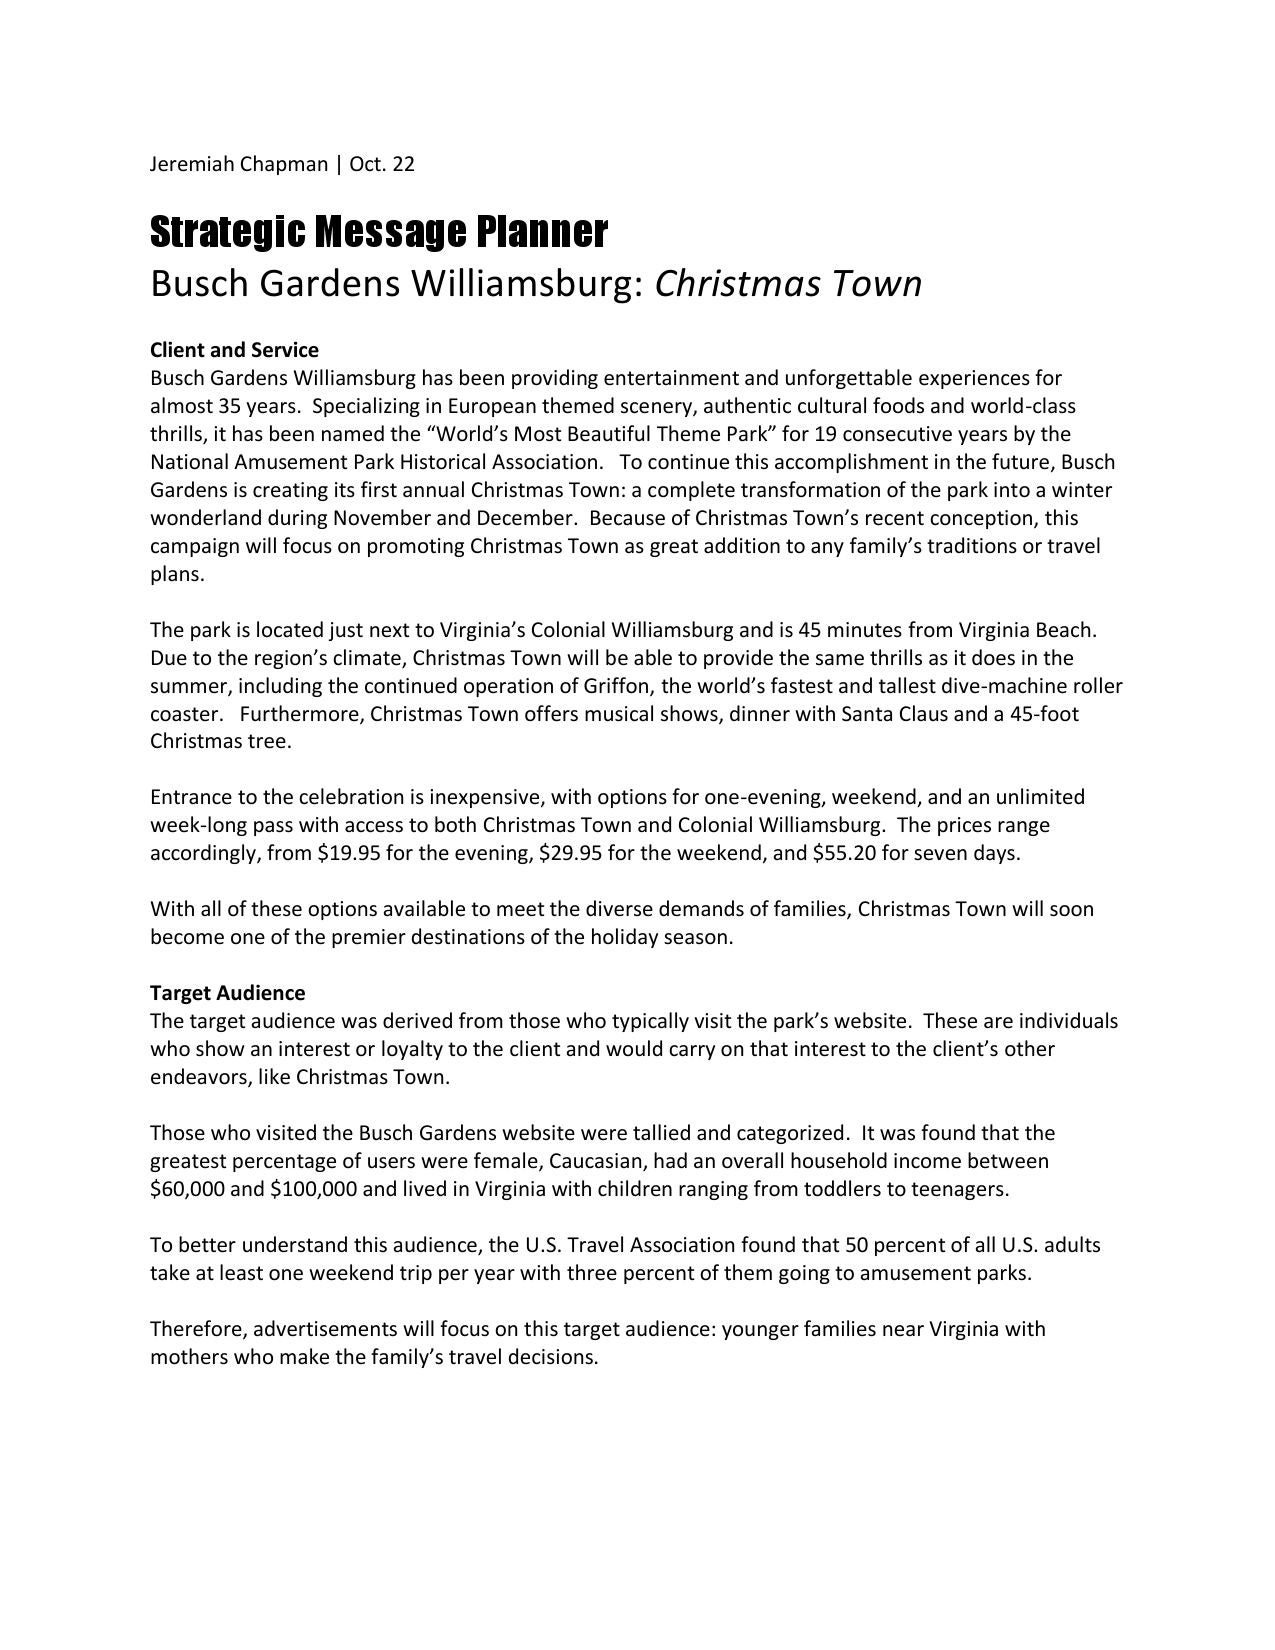 strategic message planner by jeremiah chapman issuu